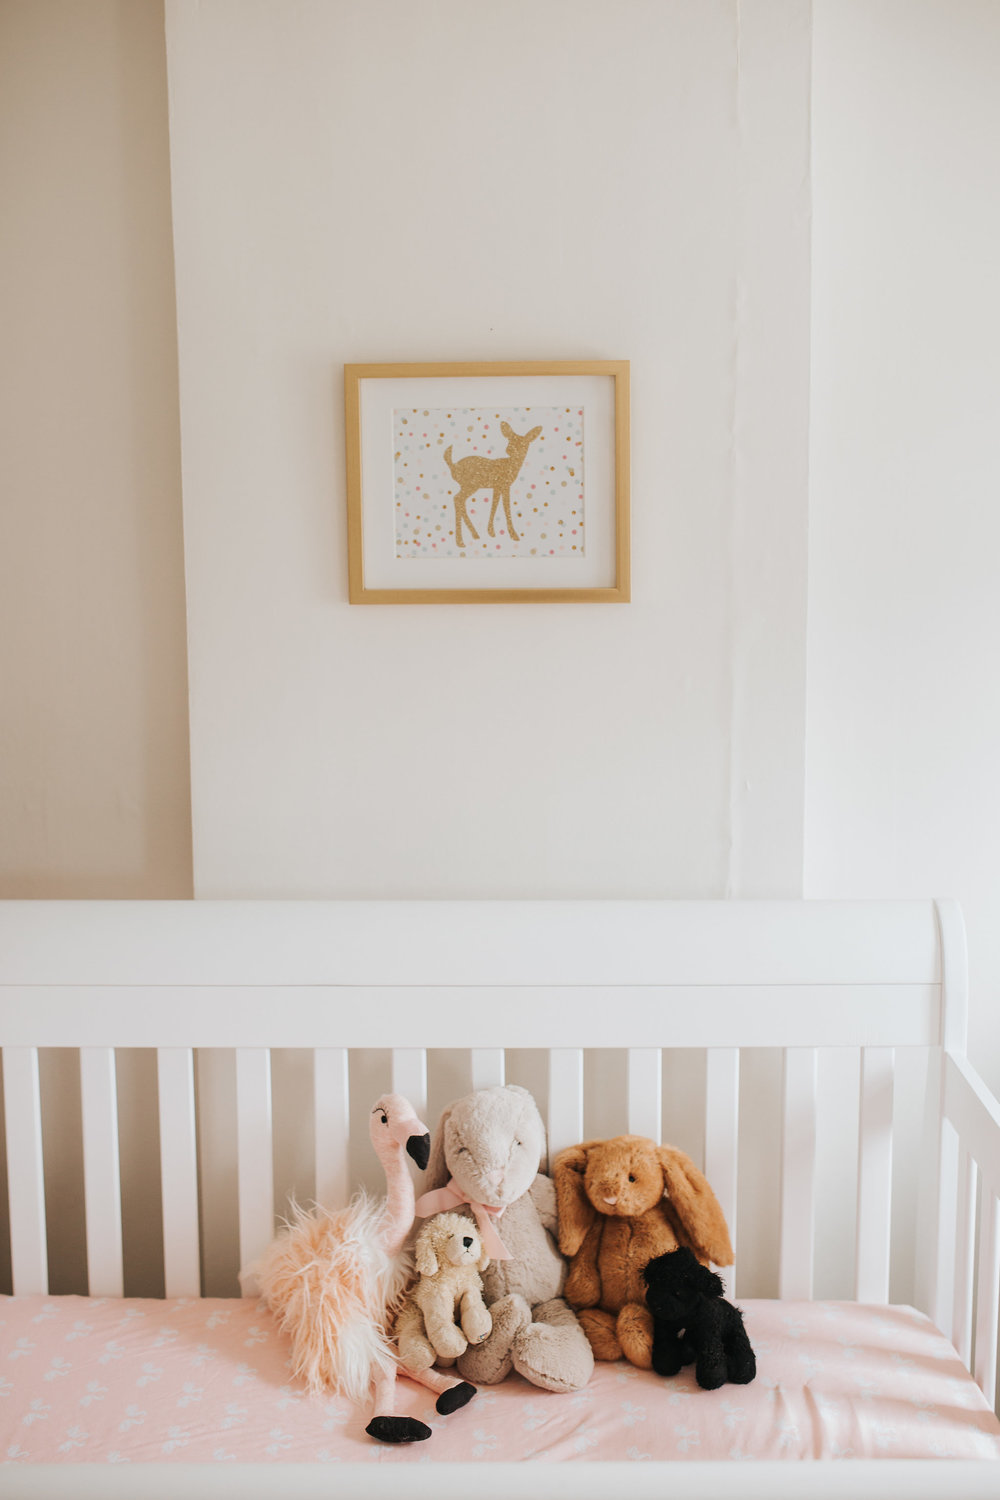 pink gold and white nursery details, stuffed animals in crib - Markham In-Home Photos